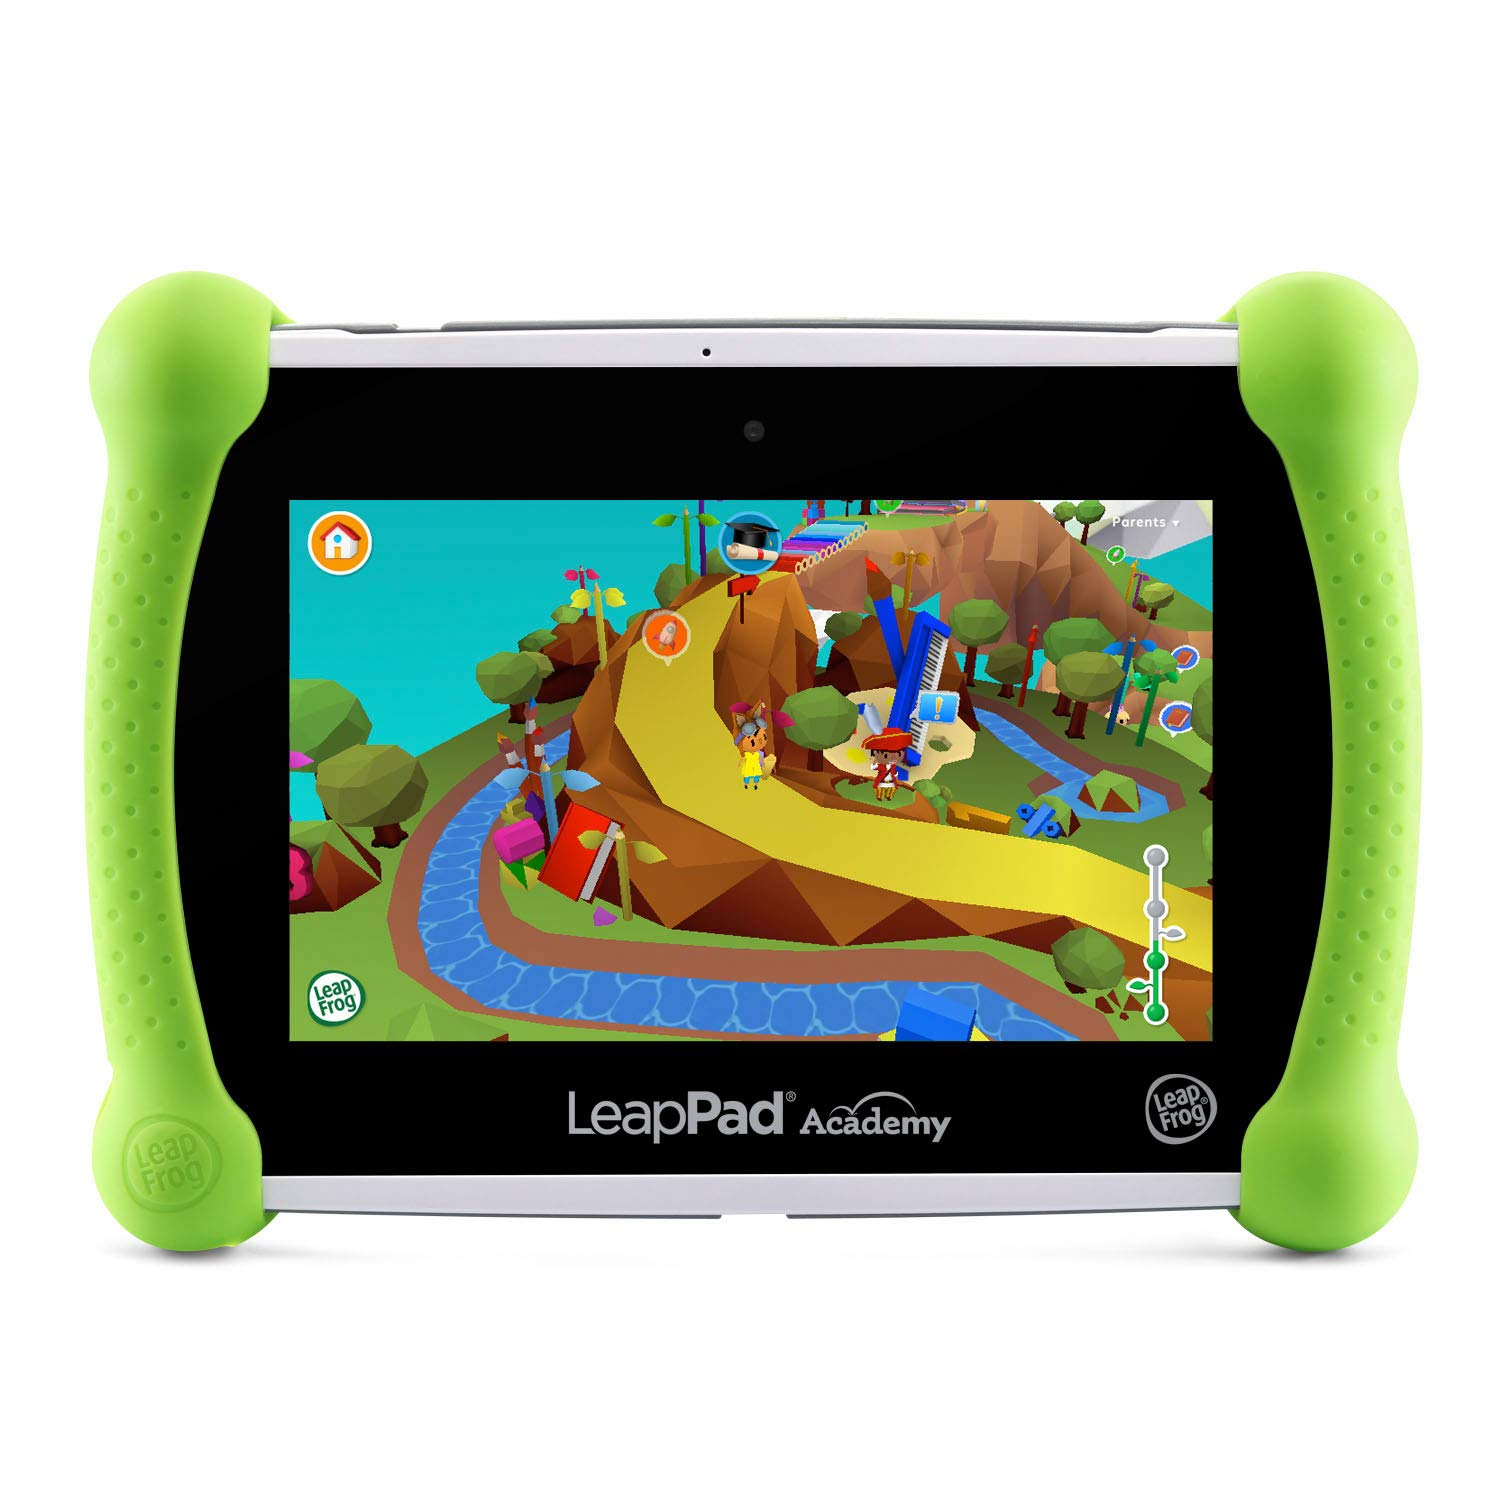 LeapFrog LeapPad Academy Kids' Learning Tablet, Green by LeapFrog (Image #10)